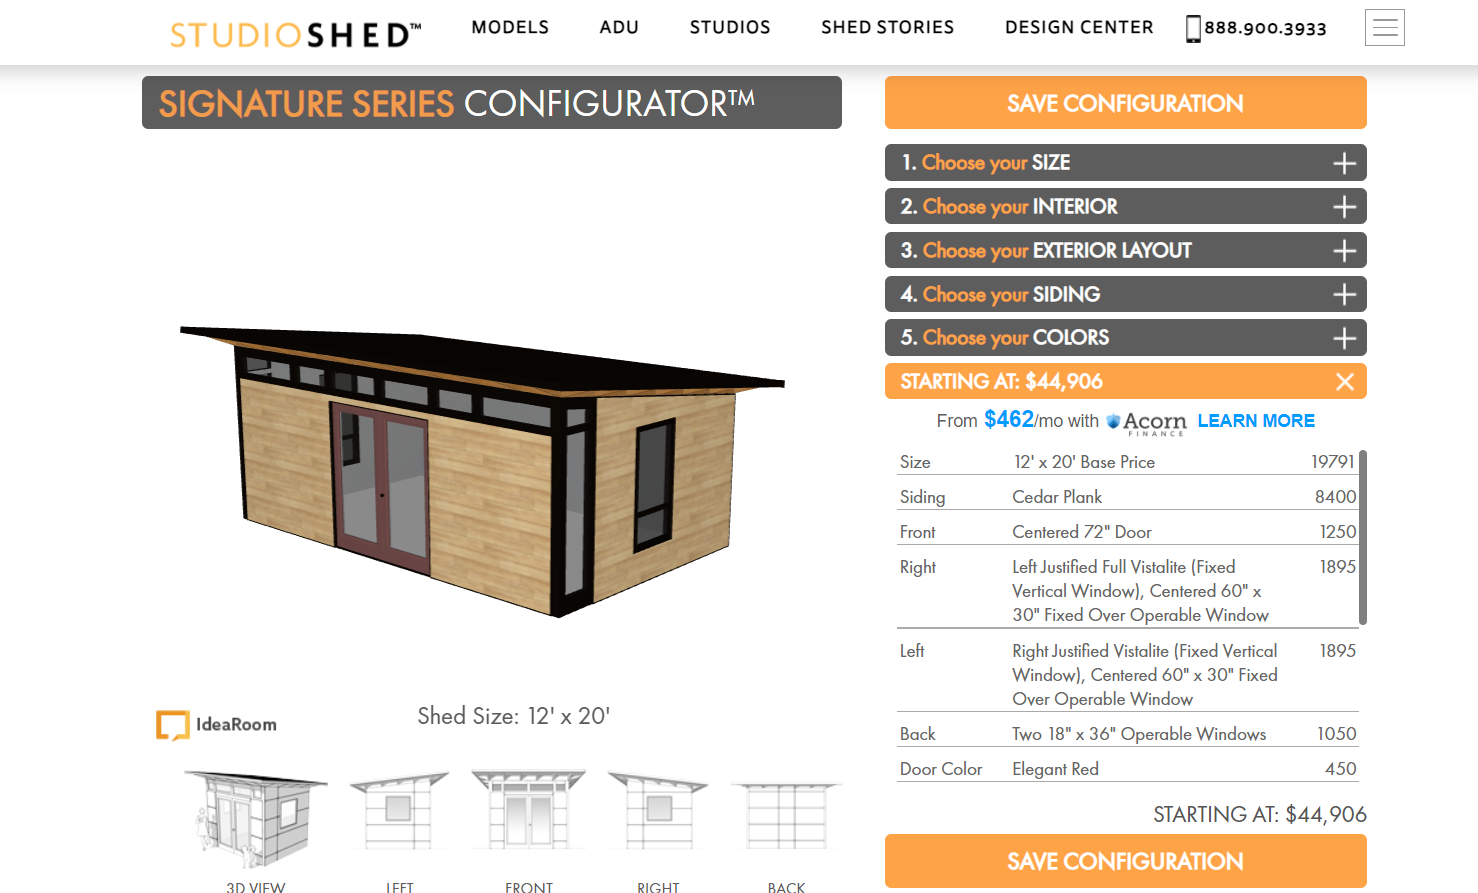 StudioShed 3d product configurator example